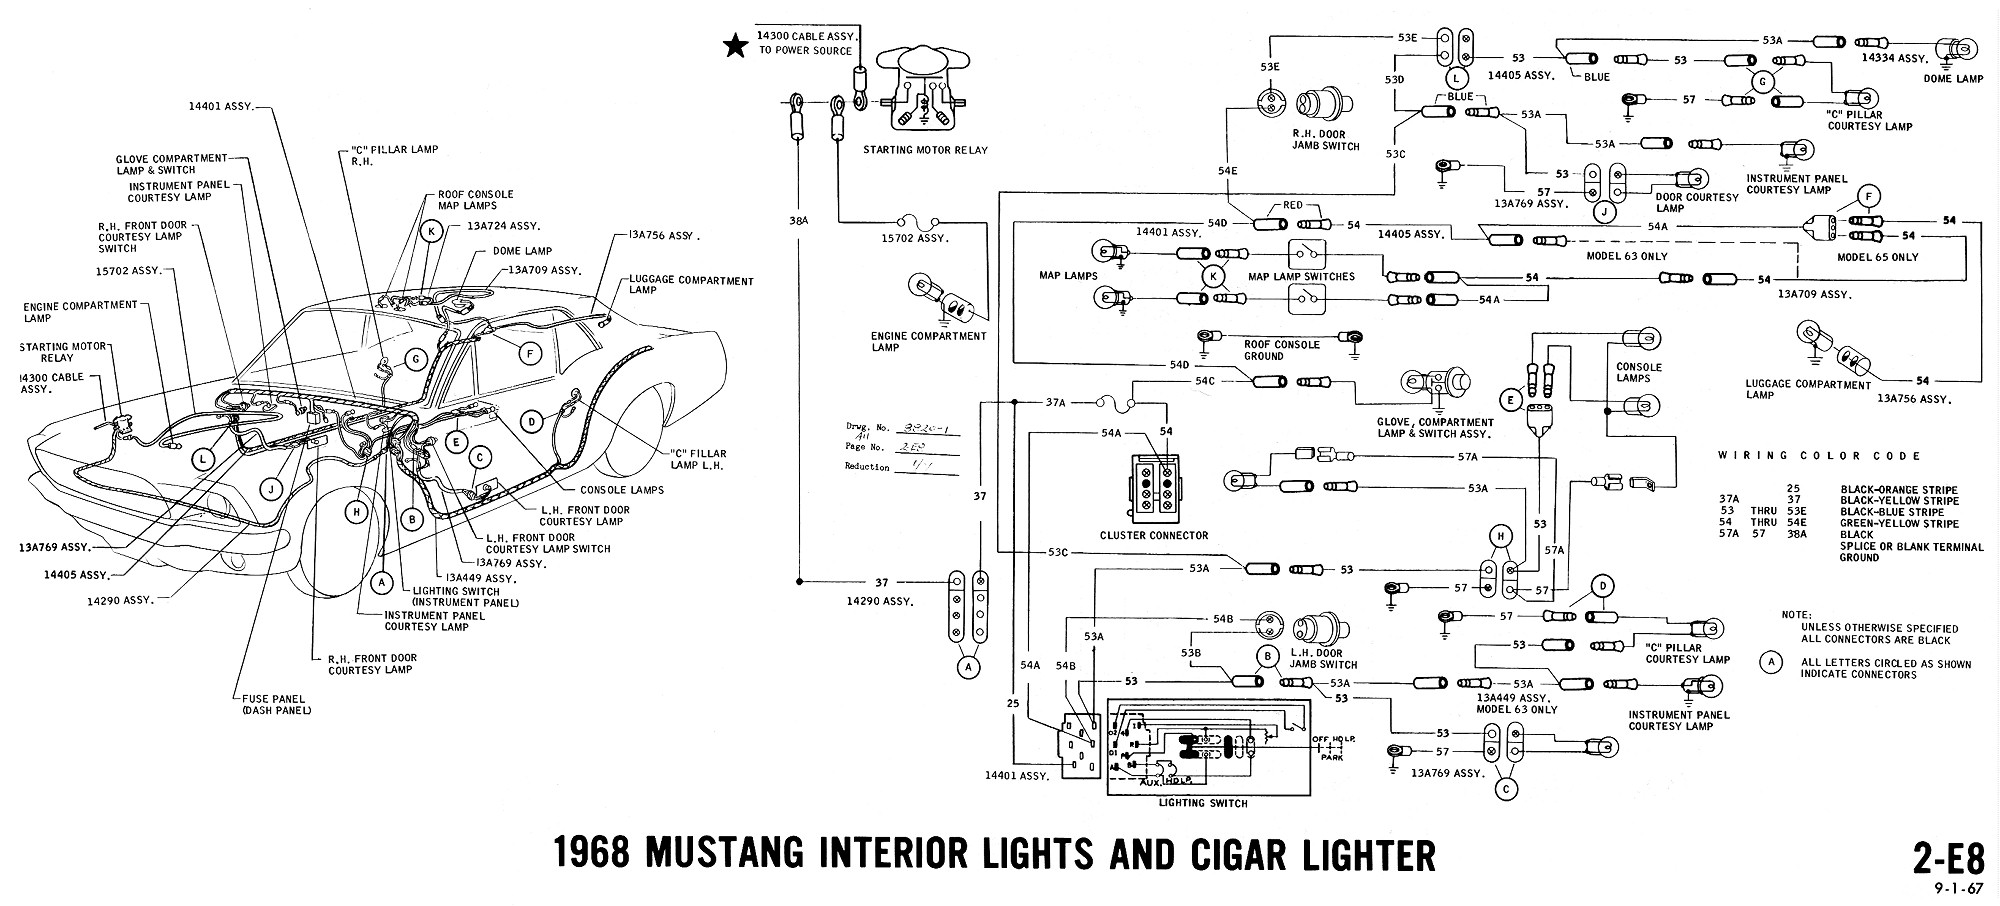 1968 mustang wiring diagrams and vacuum schematics average joe rh averagejoerestoration com EZ Wire Wiring Harness Diagram Build Wire Harness Diagram